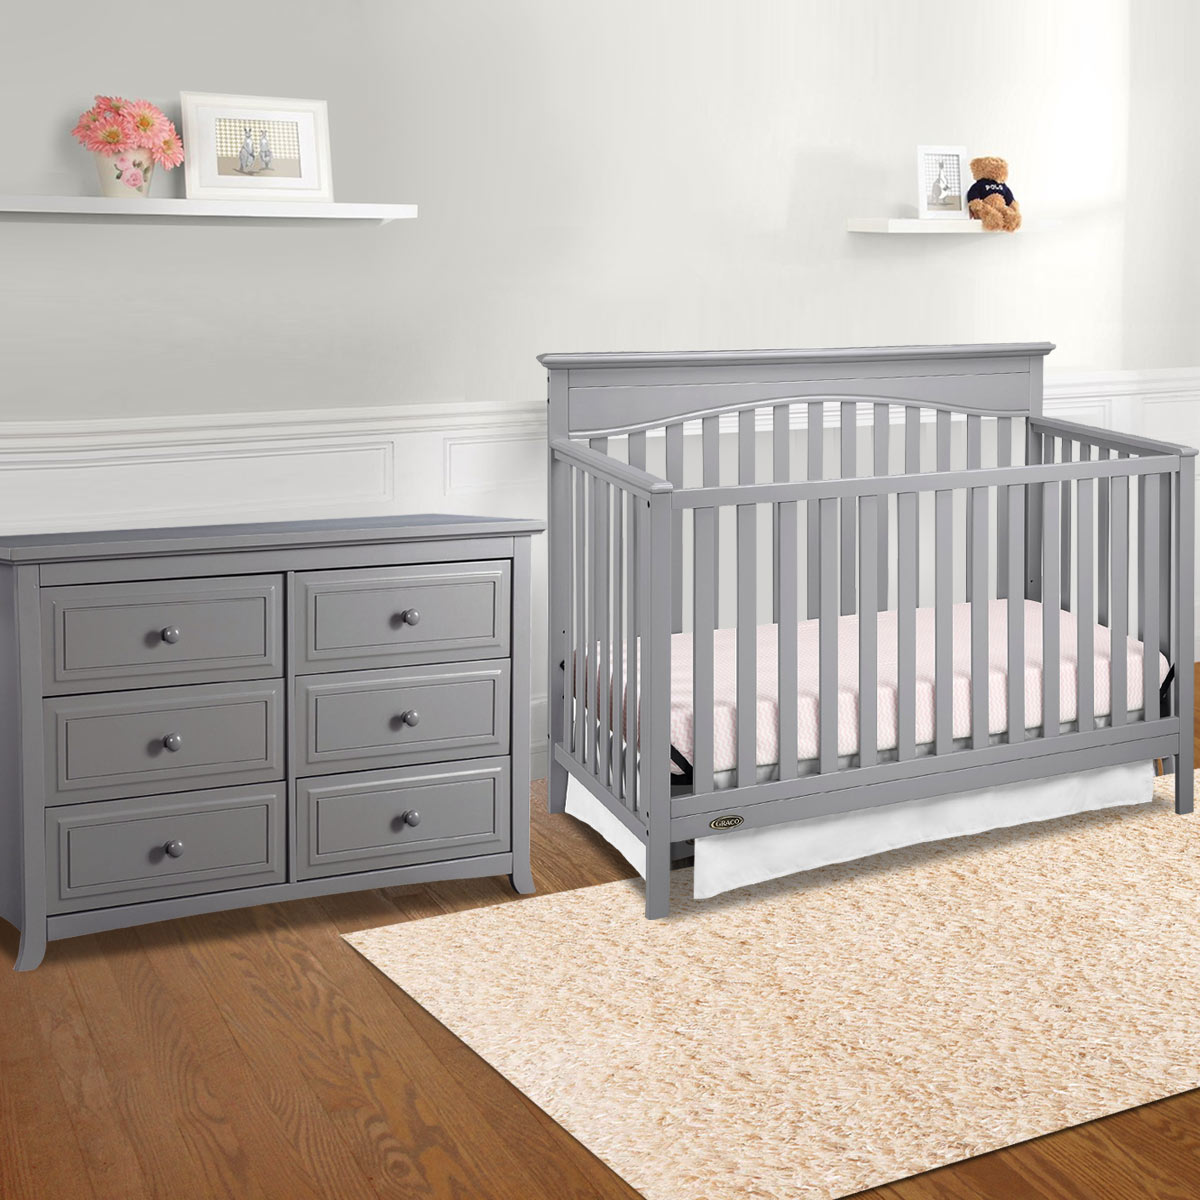 Graco Cribs Hayden 2 Piece Nursery Set 4 In 1 Convertible Crib And Auburn 6 Drawer Dresser Pebble Gray Free Shipping